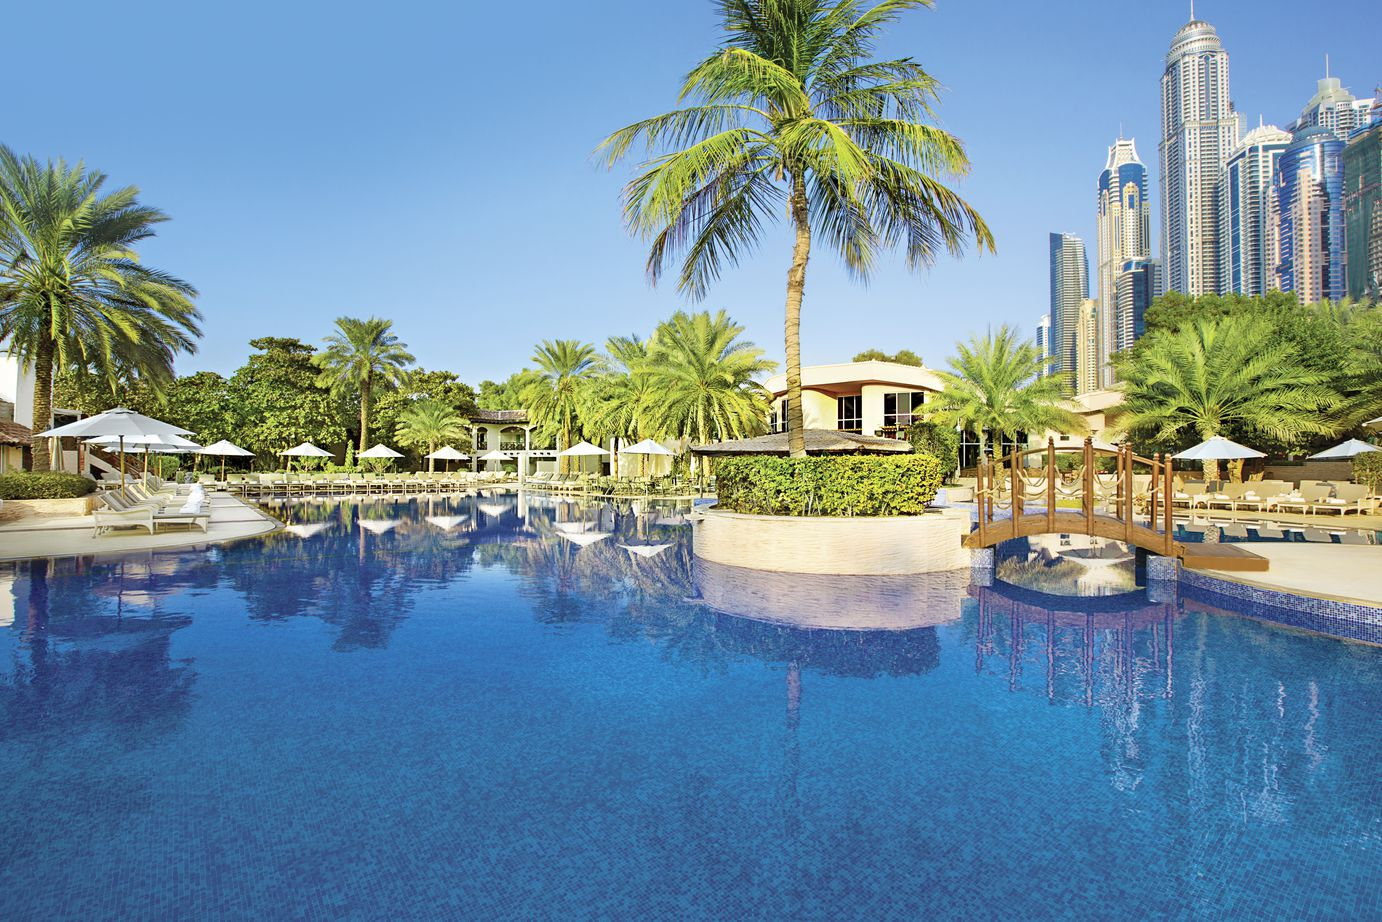 habtoor grand resort, autograph collection - 5*